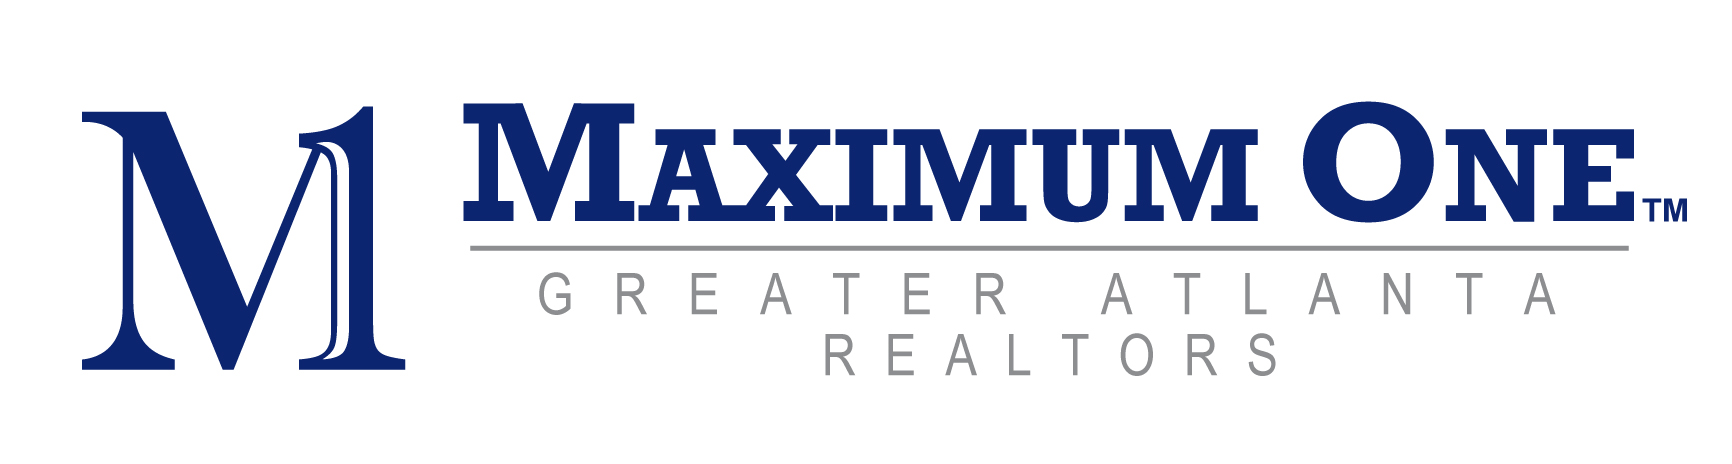 Maximum One Greater Atlanta Realtors